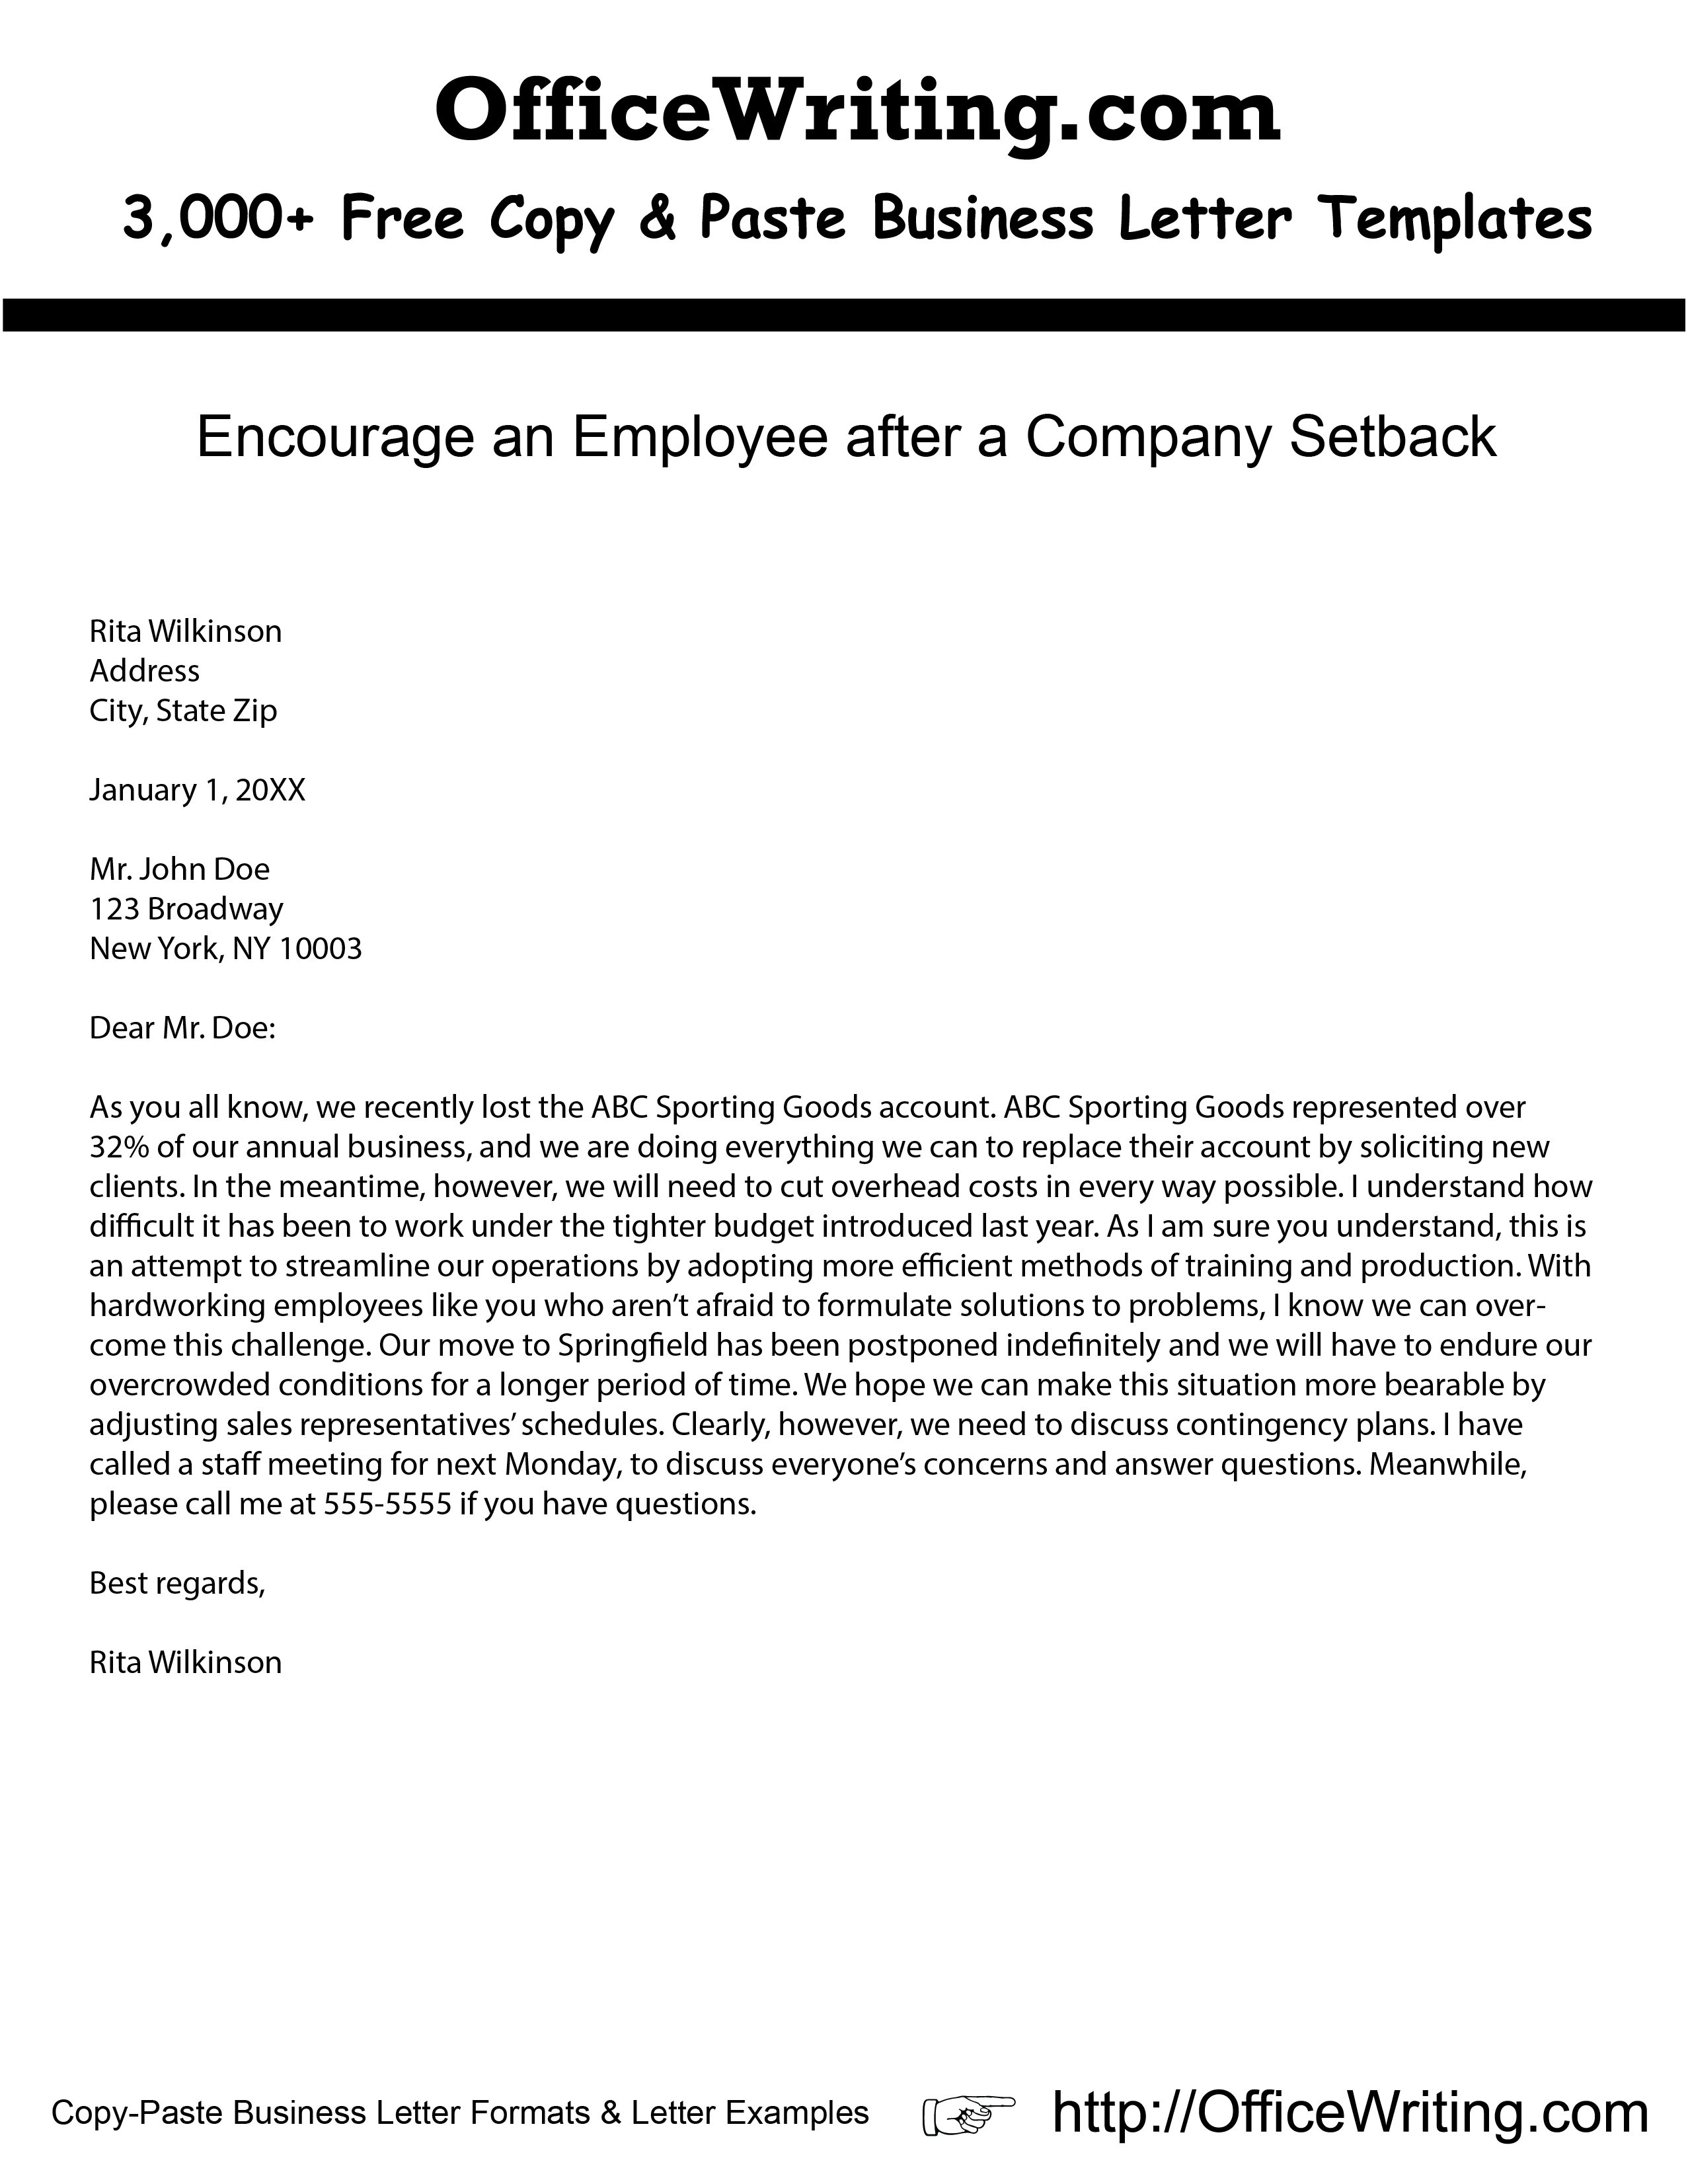 Free Business Letter format Template - Encourage An Employee after A Pany Setback Ficewriting